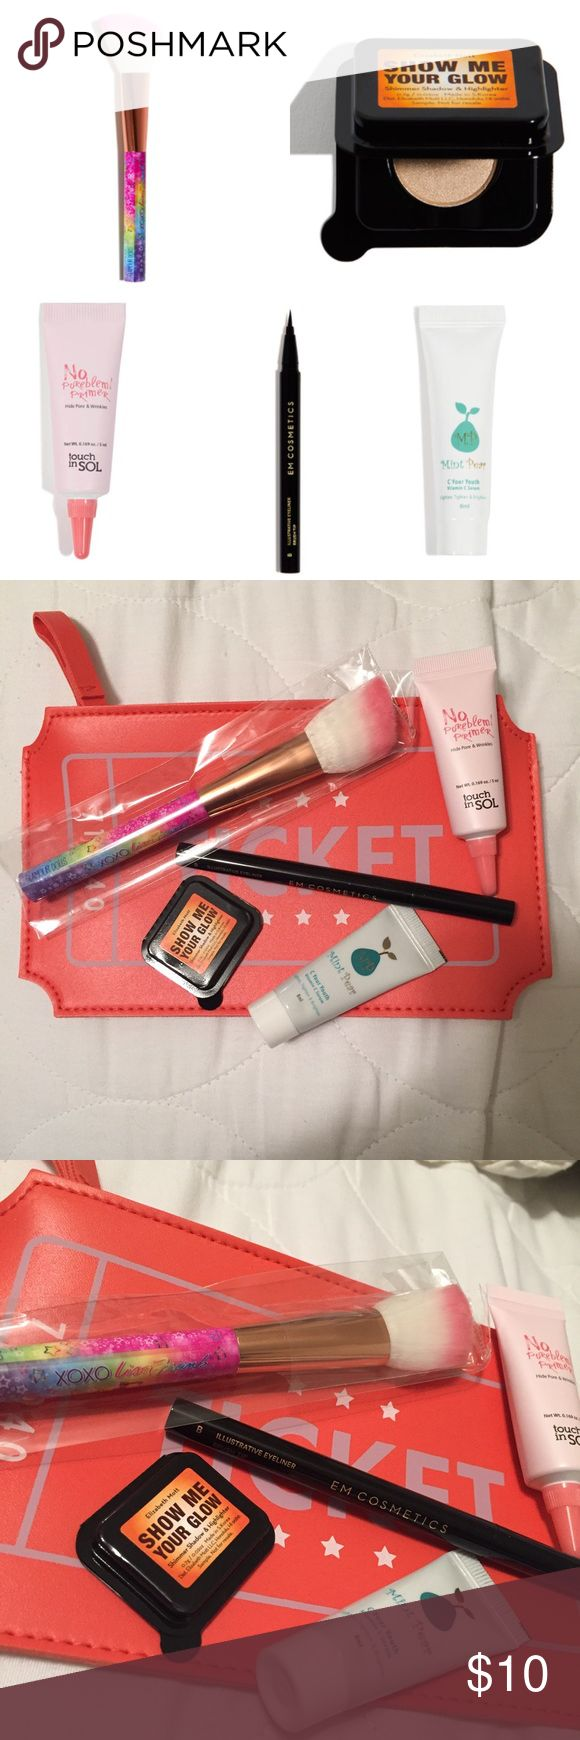 "Makeup bundle w Glamour Dolls x Lisa Frank brush! Ipsy bag! All items are brand new, never swatched or used. Glamour Dolls x Lisa Frank angle brush, EM cosmetics eyeliner with brush tip, touch in SOL ""No Poreblem"" primer, MintPear vitamin C serum, Elizabeth Mott Show Me Your Glow shimmer shadow and highlighter, and cute ipsy ticket bag. **NO TRADES** Sephora Makeup"